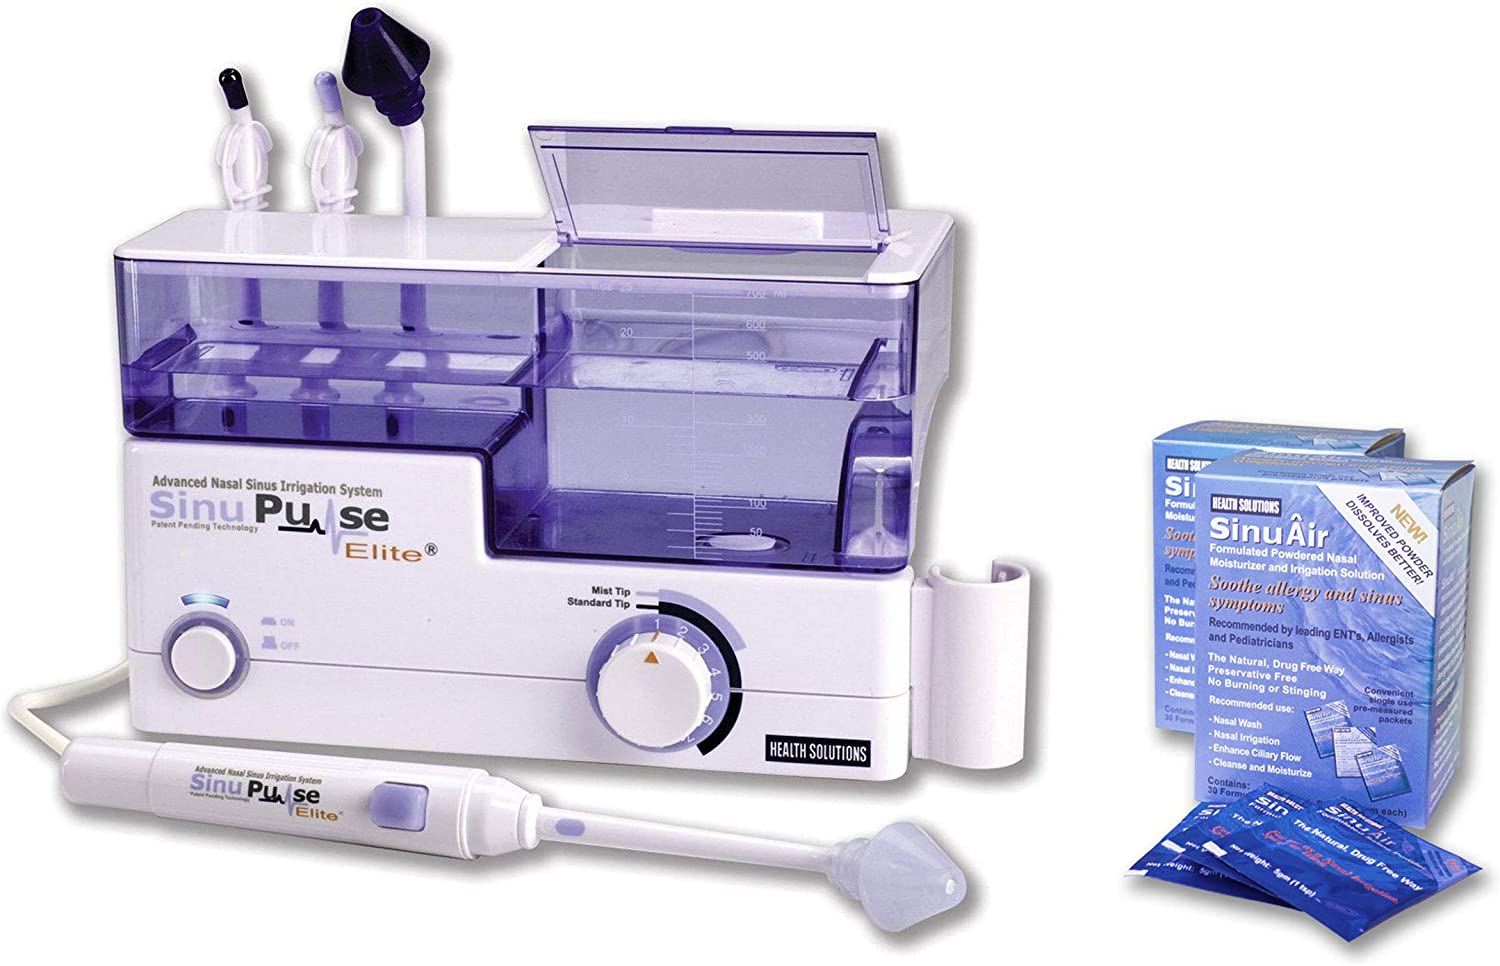 SinuPulse Elite Advanced Nasal Sinus Irrigation System with 60 Additional SinuAir Packets